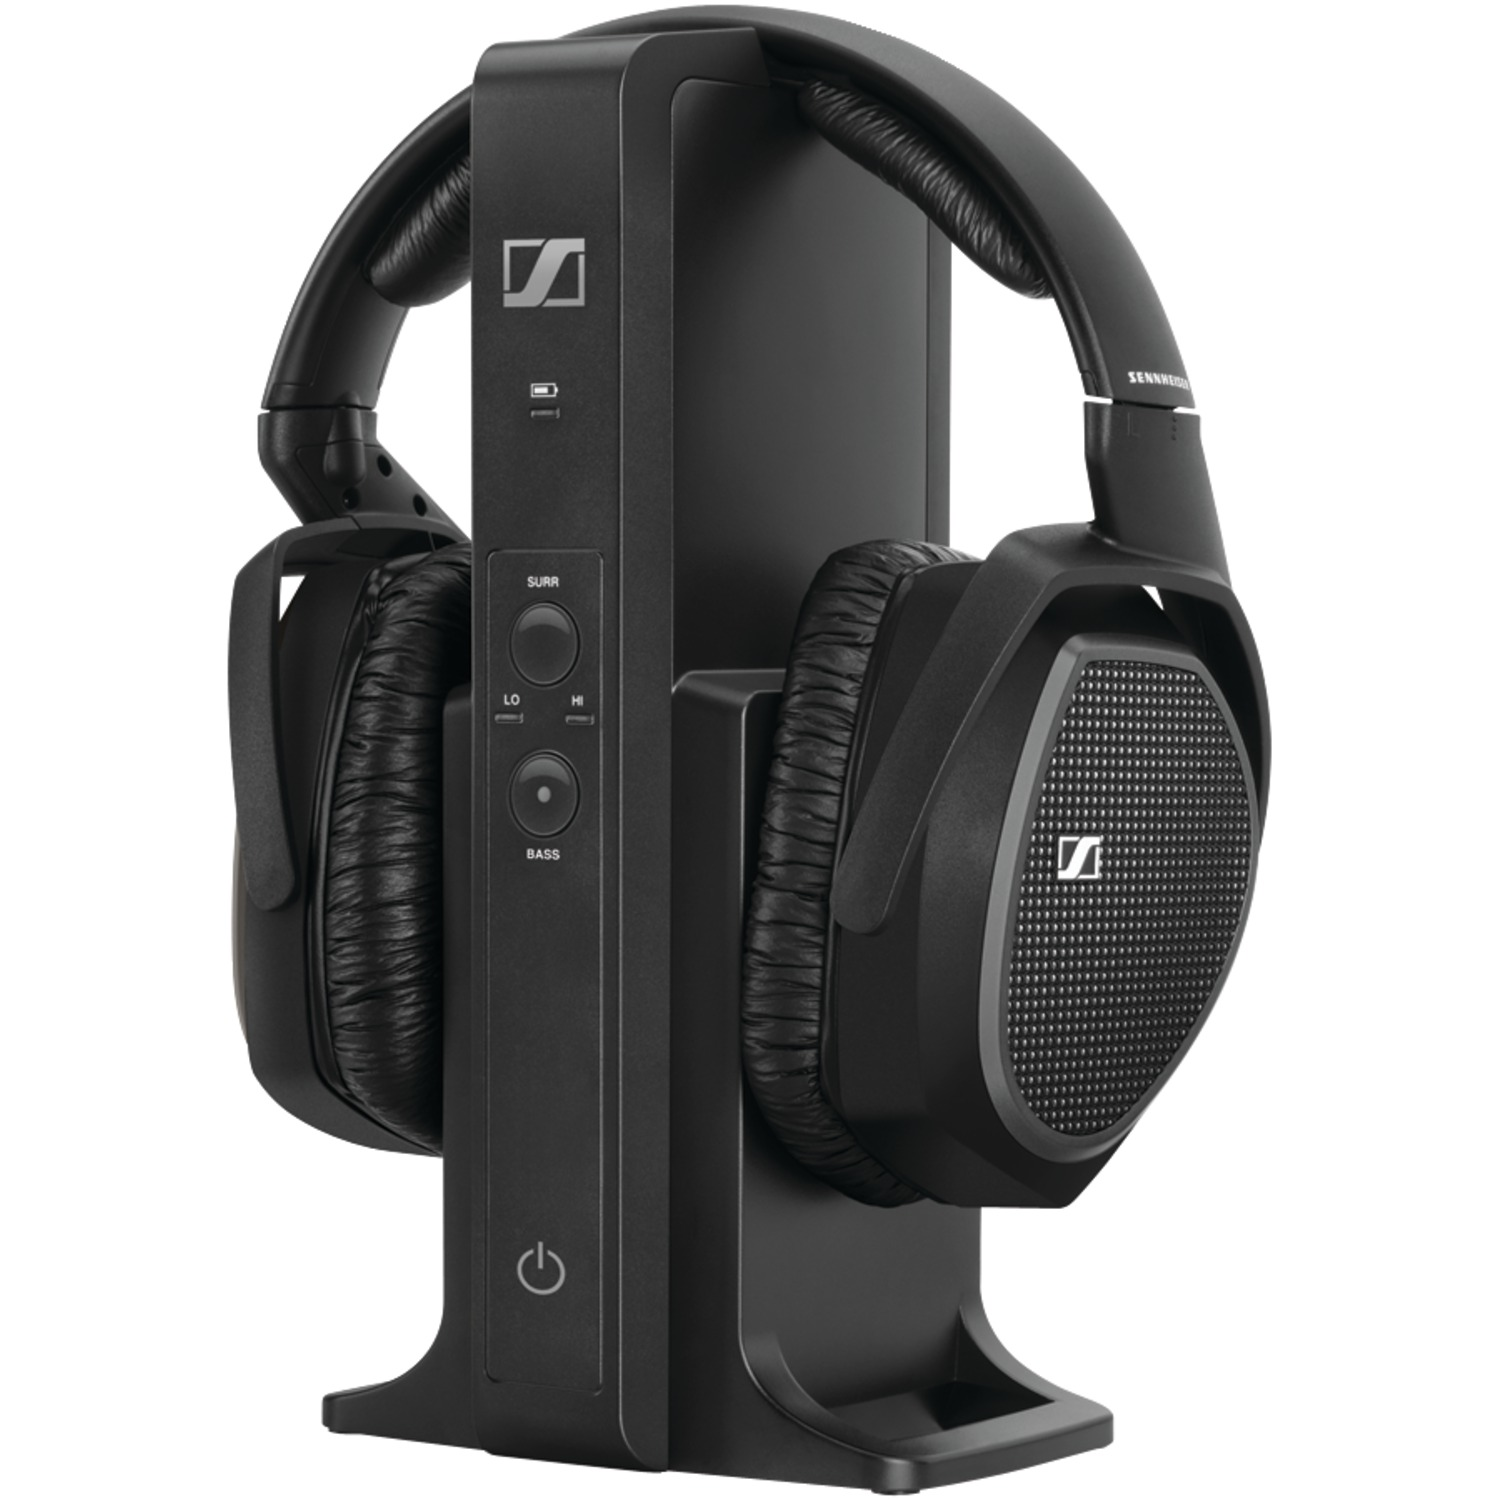 Sennheiser 505563 RS 175 Wireless Over-Ear Headphone System